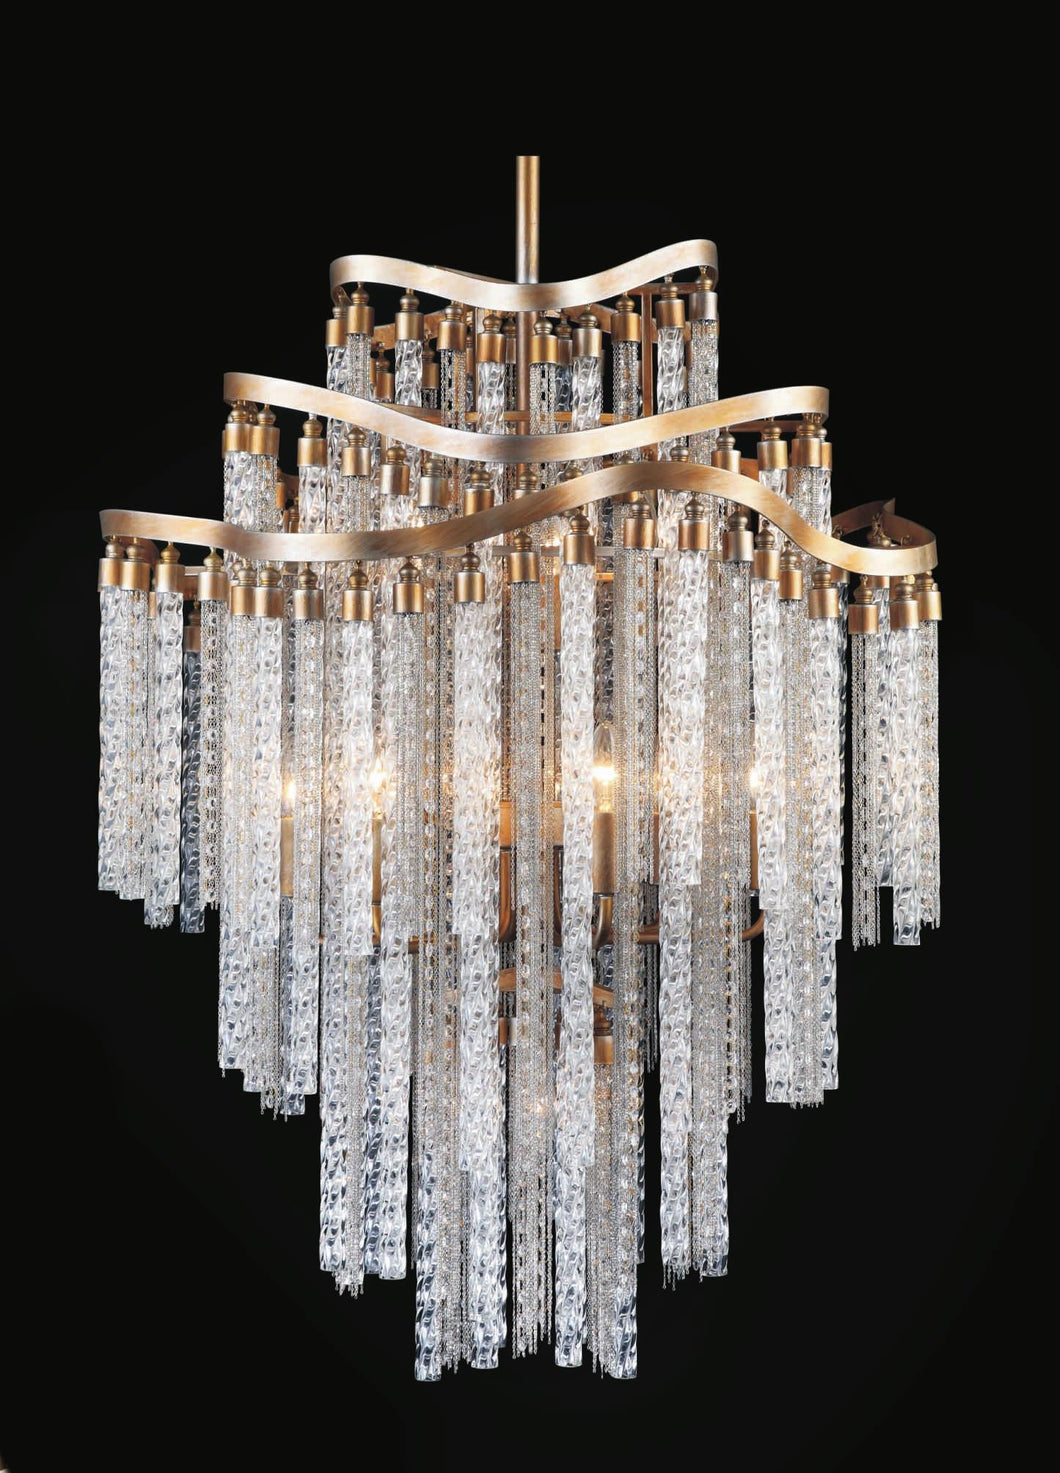 14 Light Down Chandelier with Gold finish